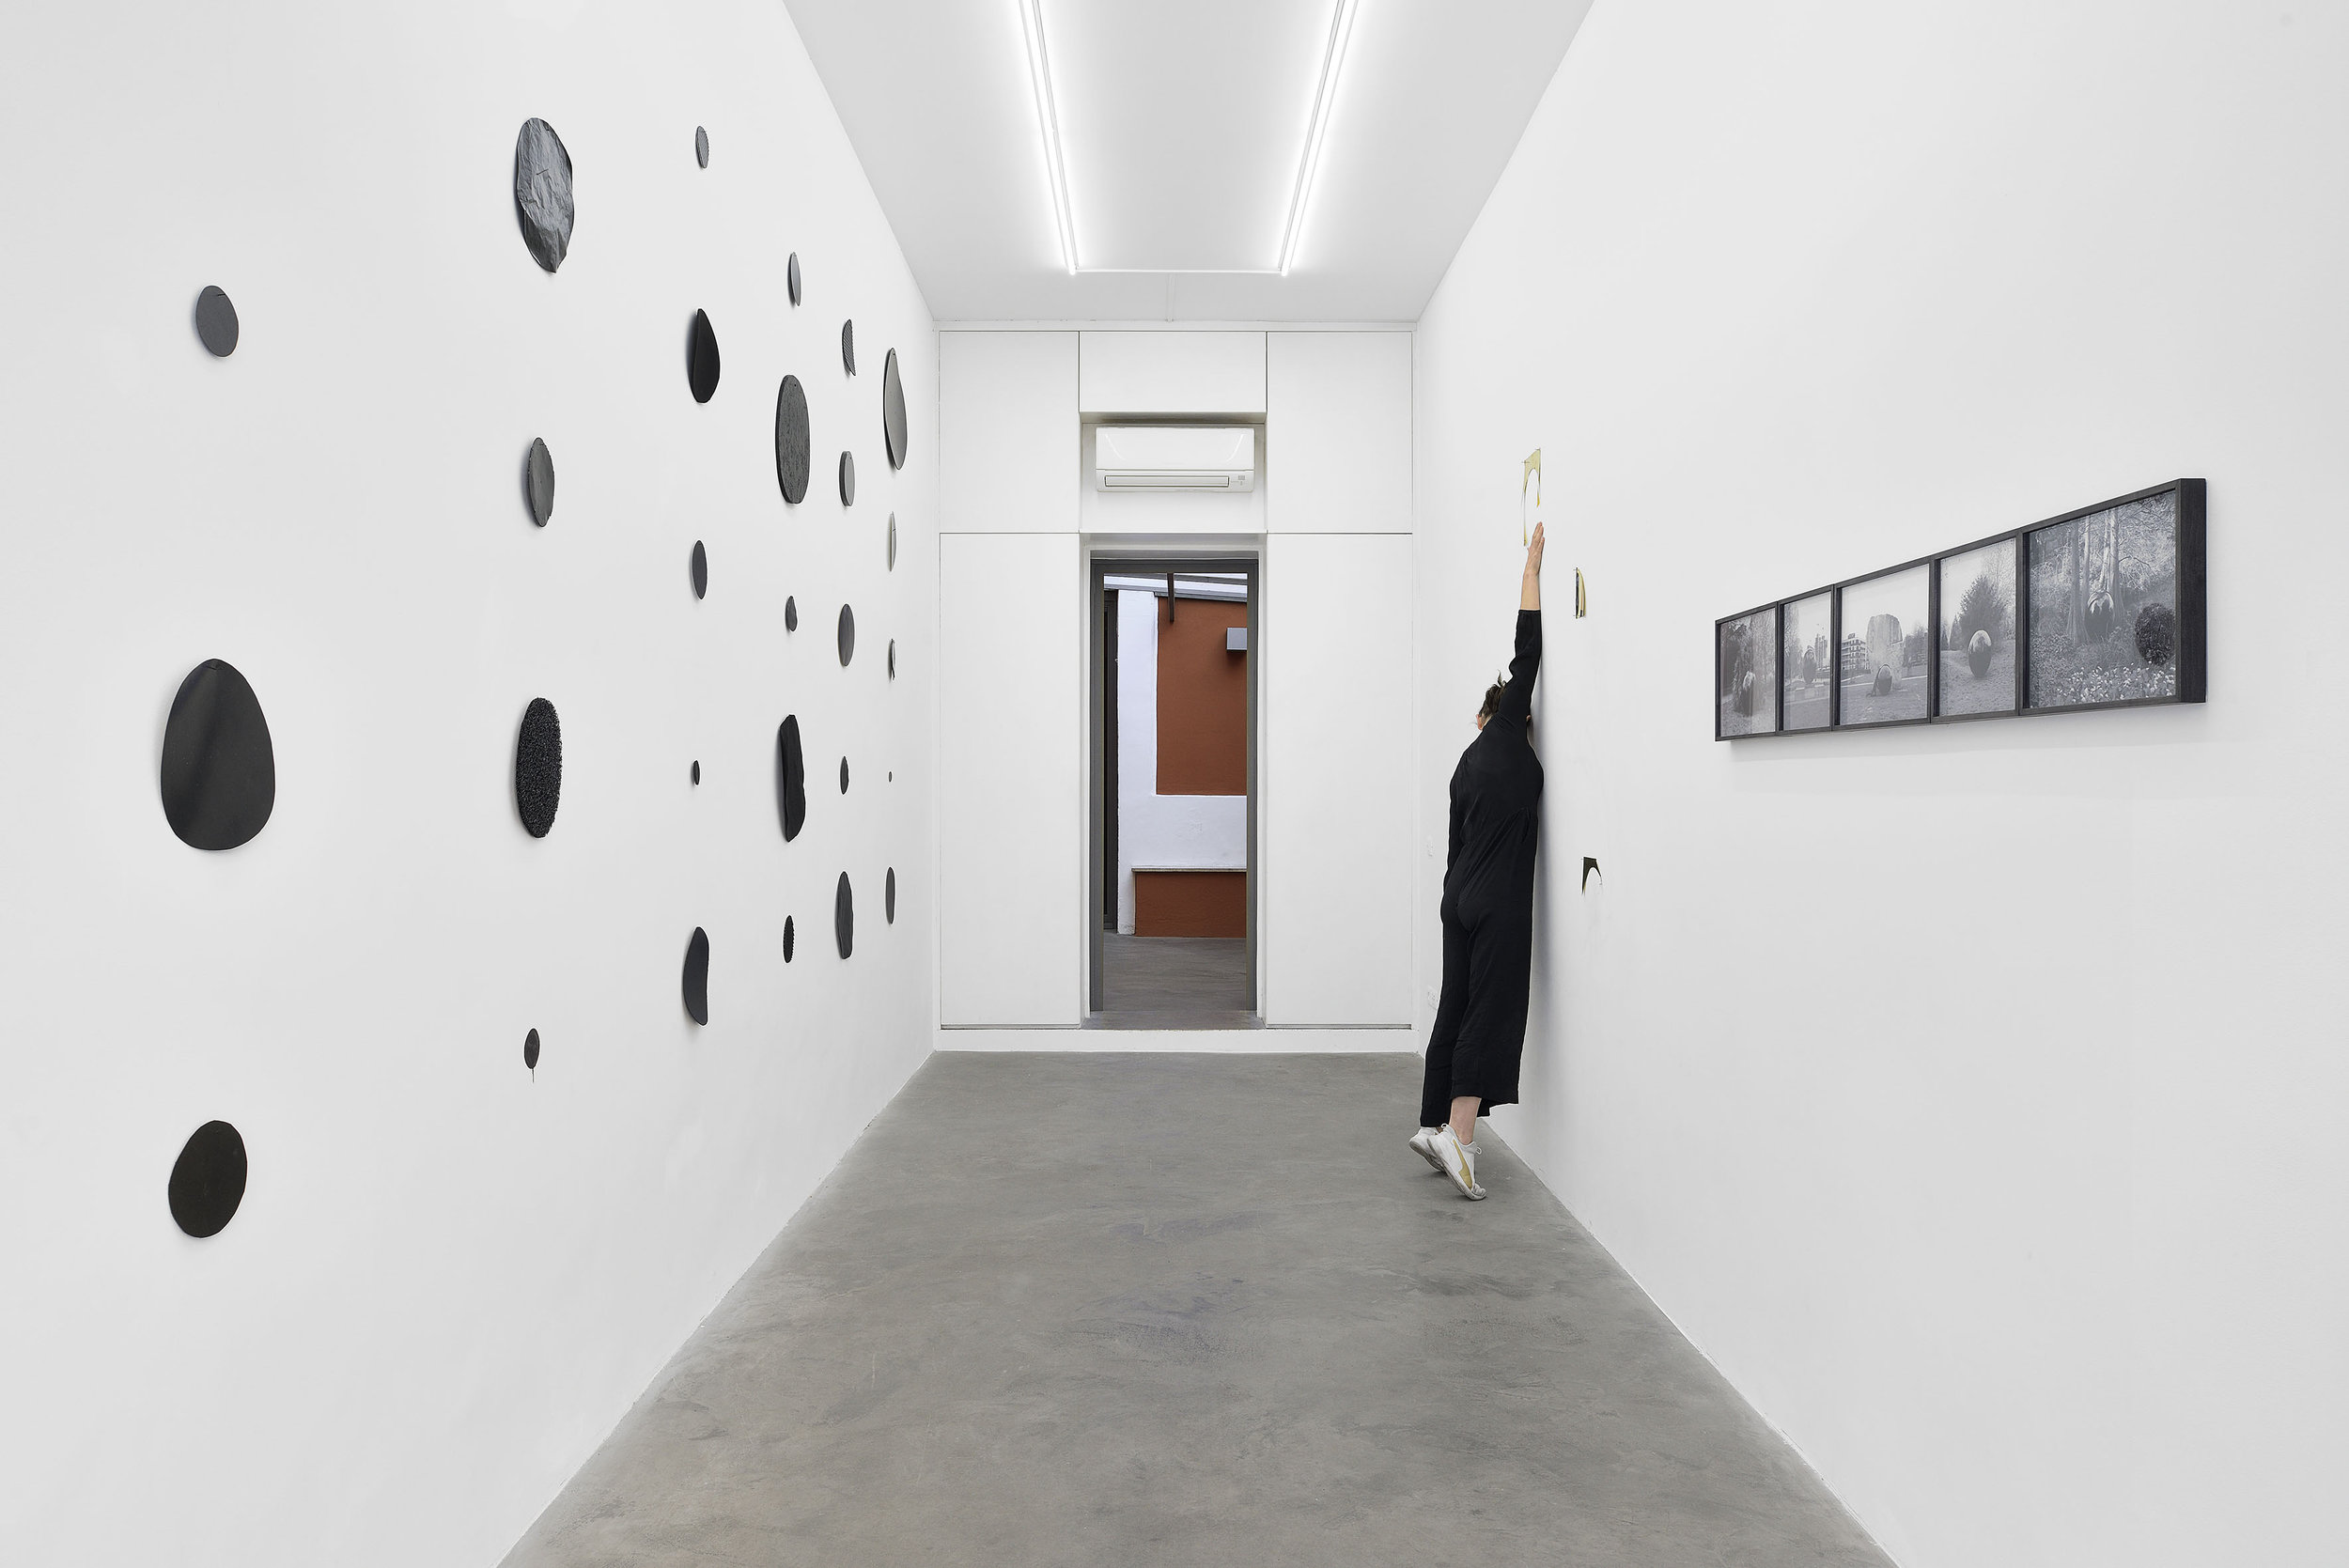 Present Tense, Materia Gallery, Rome, 2019  Installation view. Performance in collaboration with Typhaine Delaup